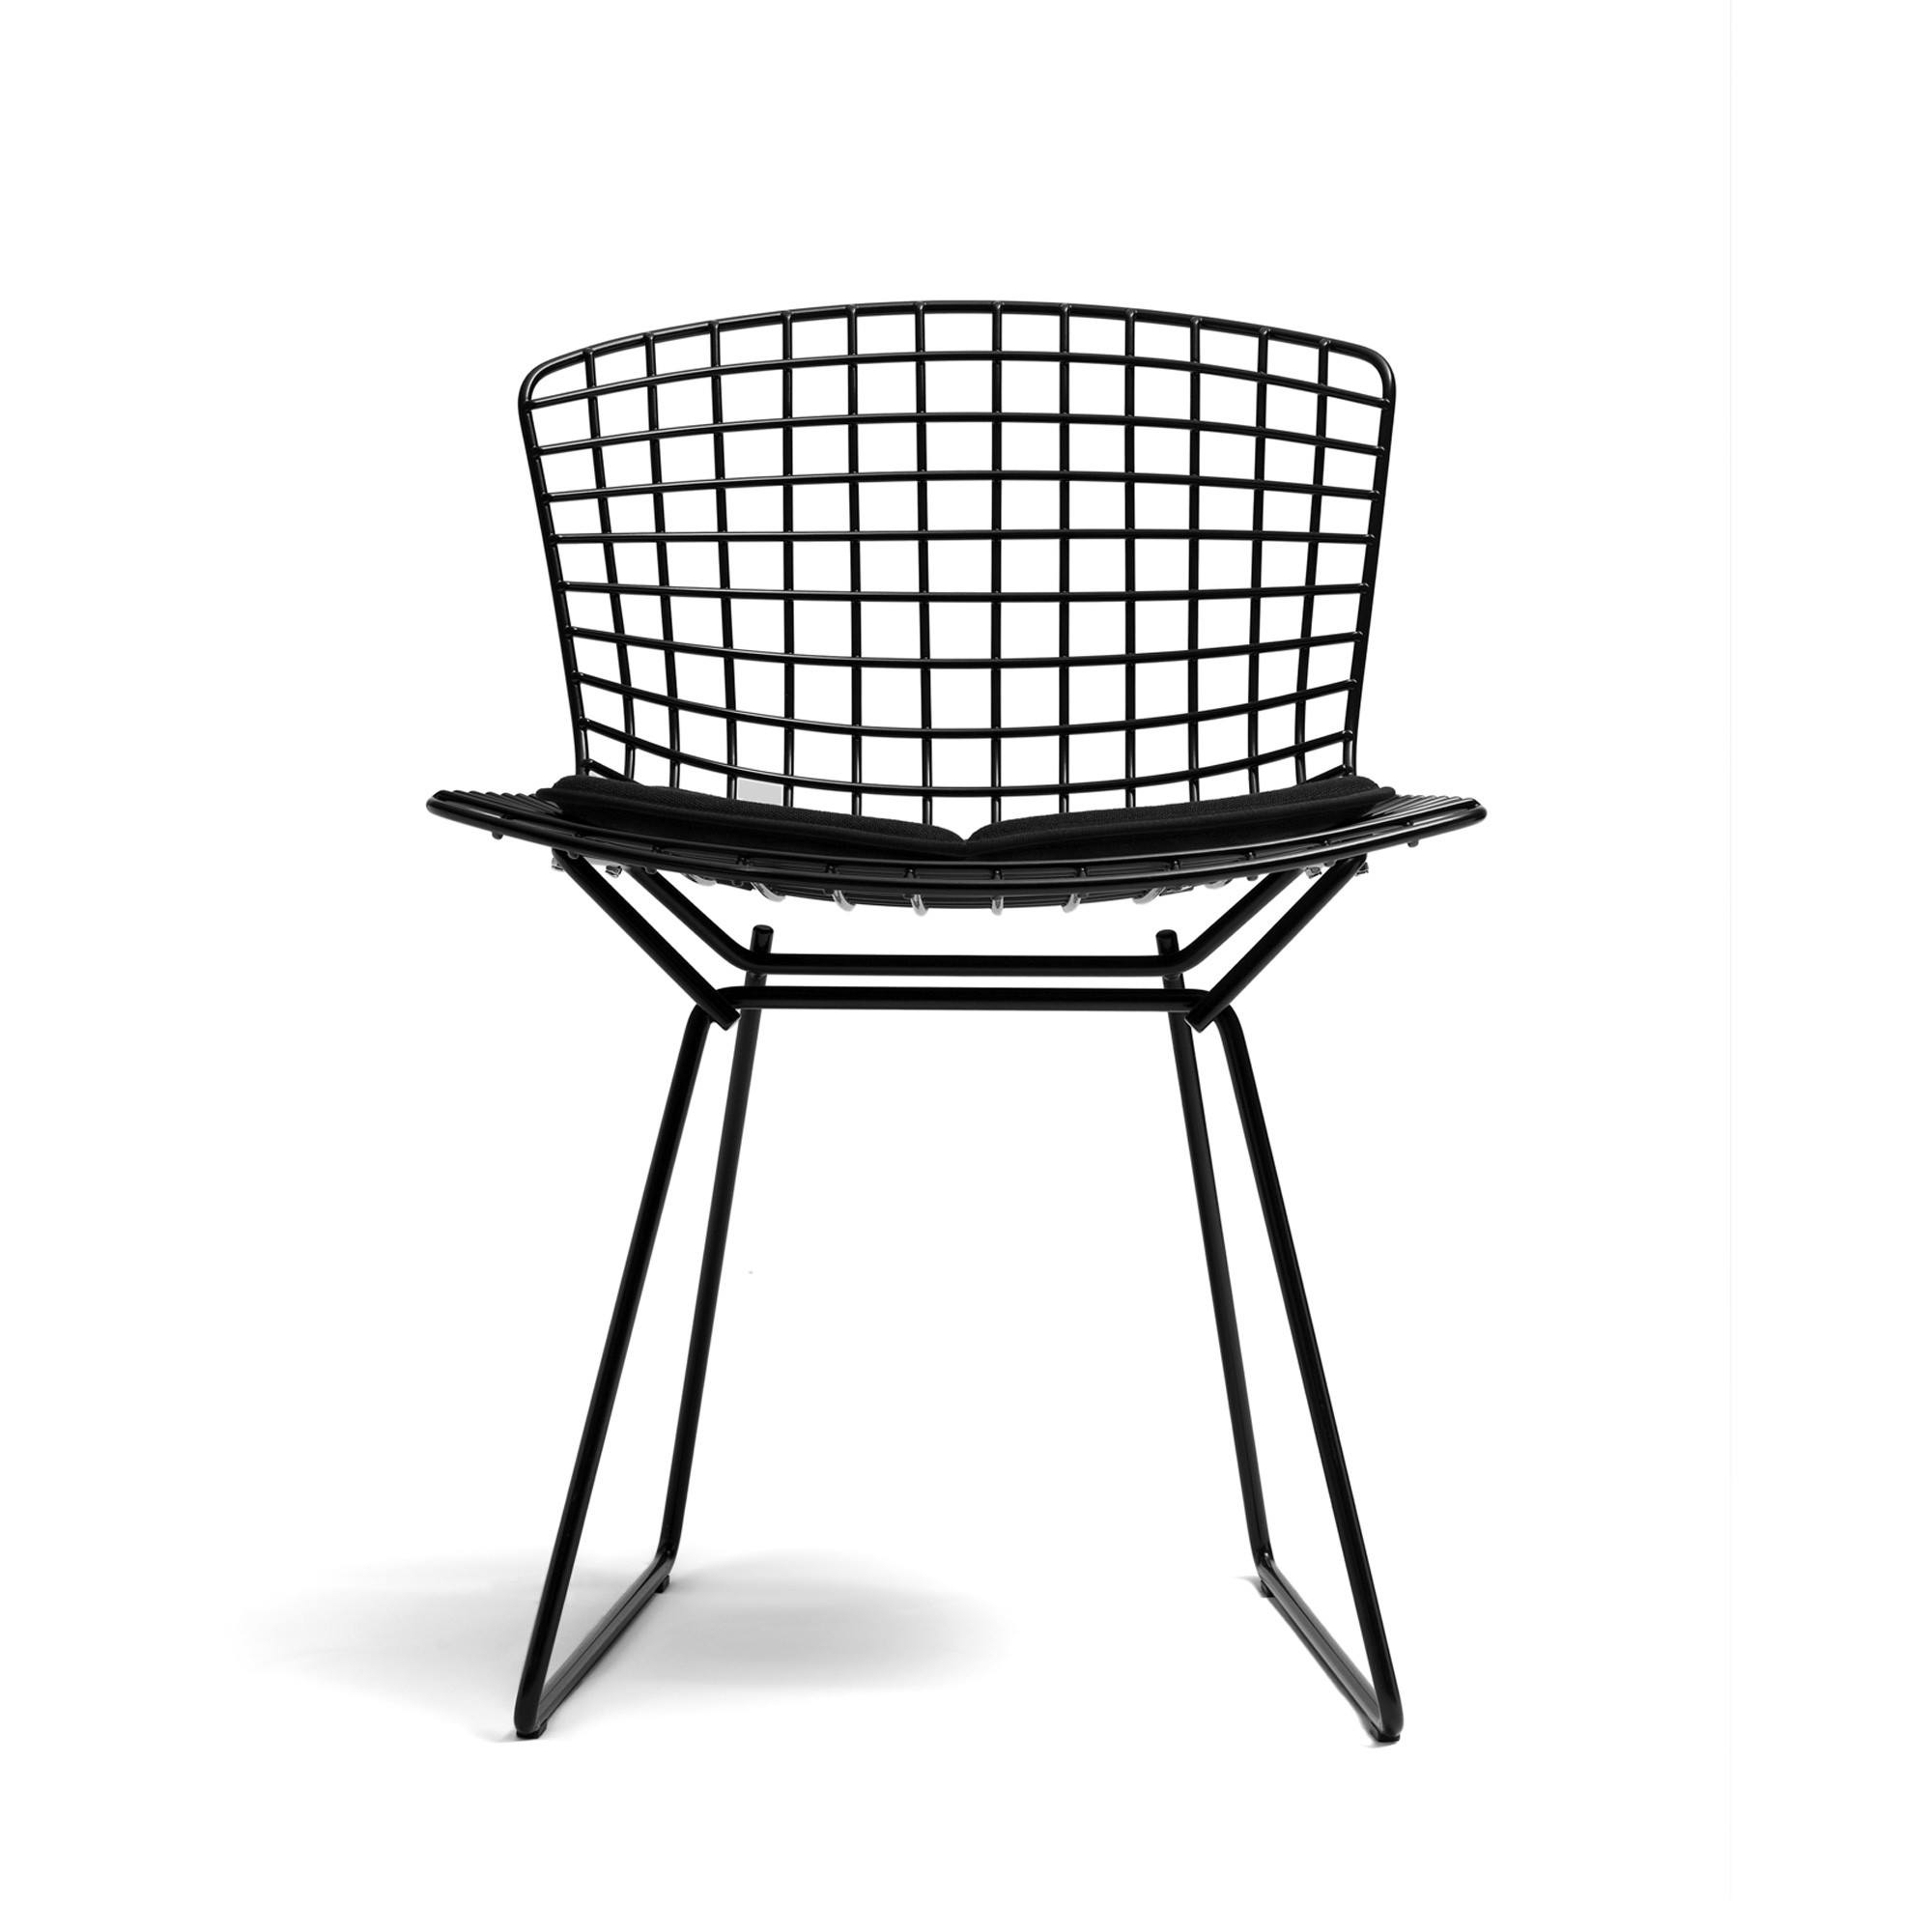 Widely Used Cole Ii Black Side Chairs In Scandinavian Outdoor Garden & Patio Furniture (#20 of 20)